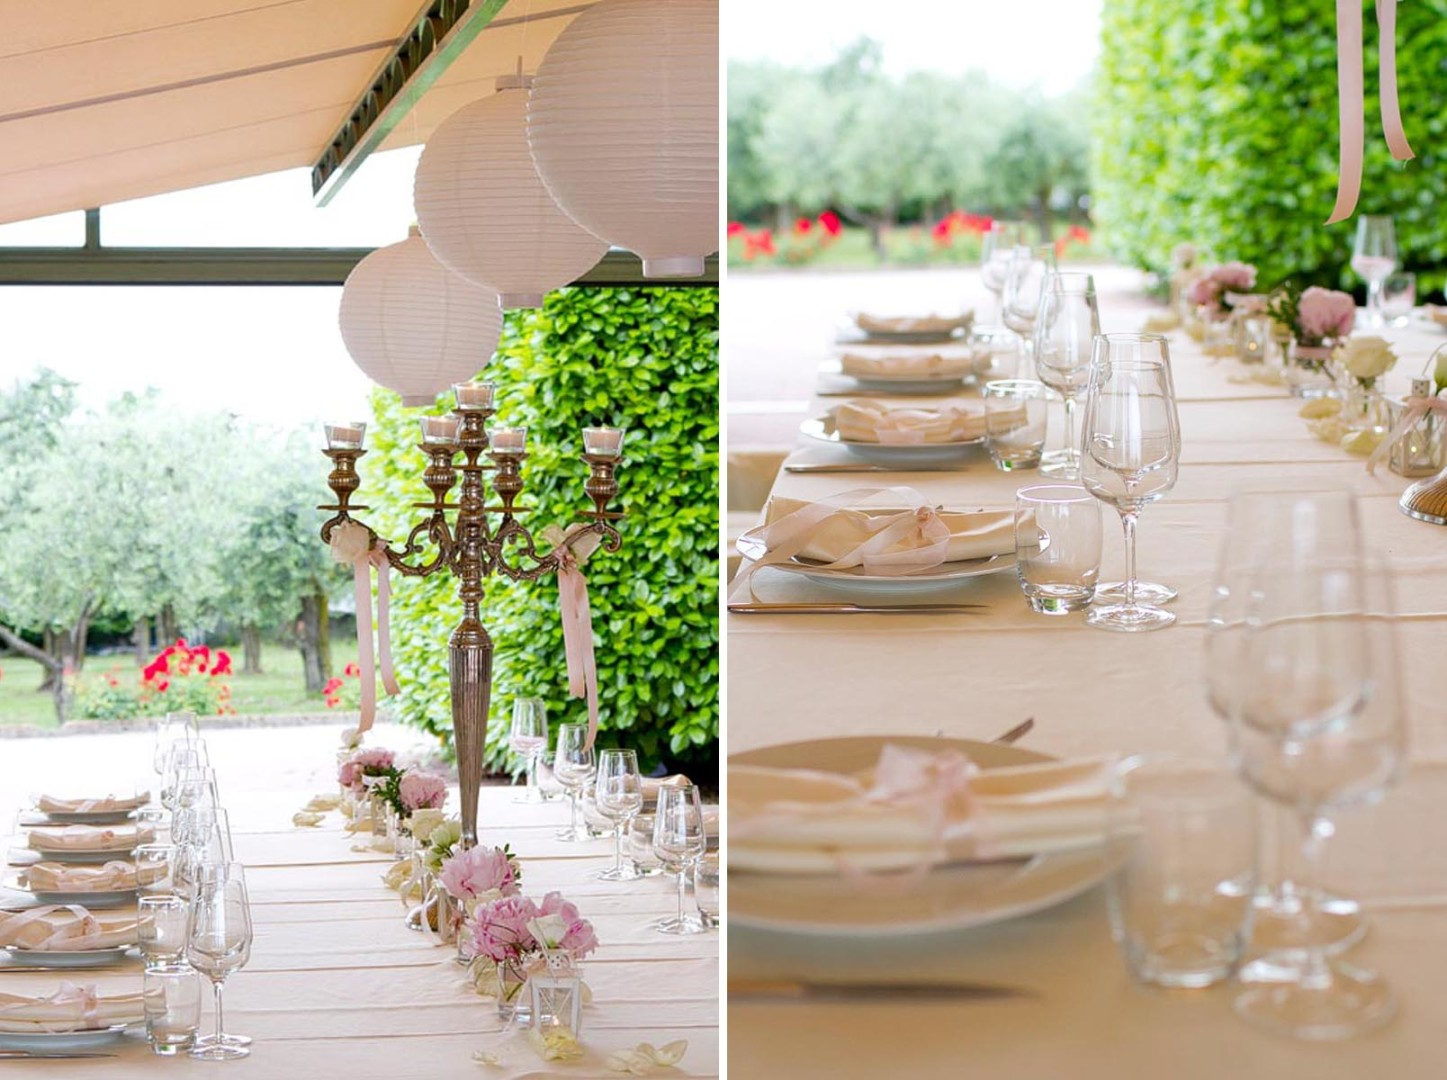 DestinationWedding_Italy_DesireeMostad_NorskBryllupItalia_042